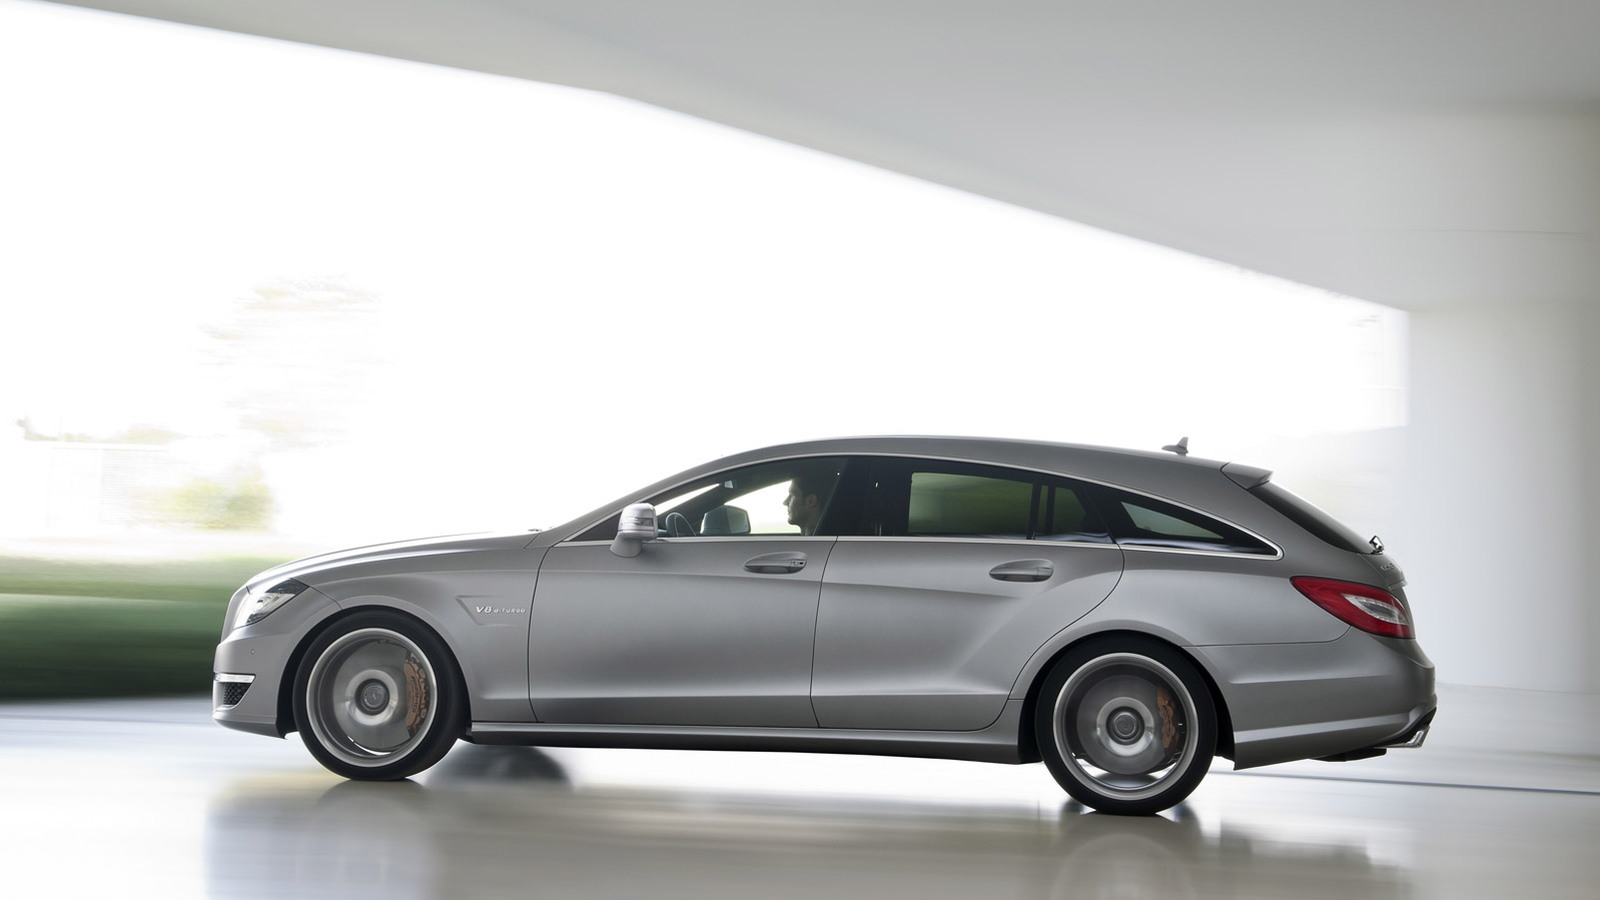 2013 Mercedes-Benz CLS63 AMG Shooting Brake